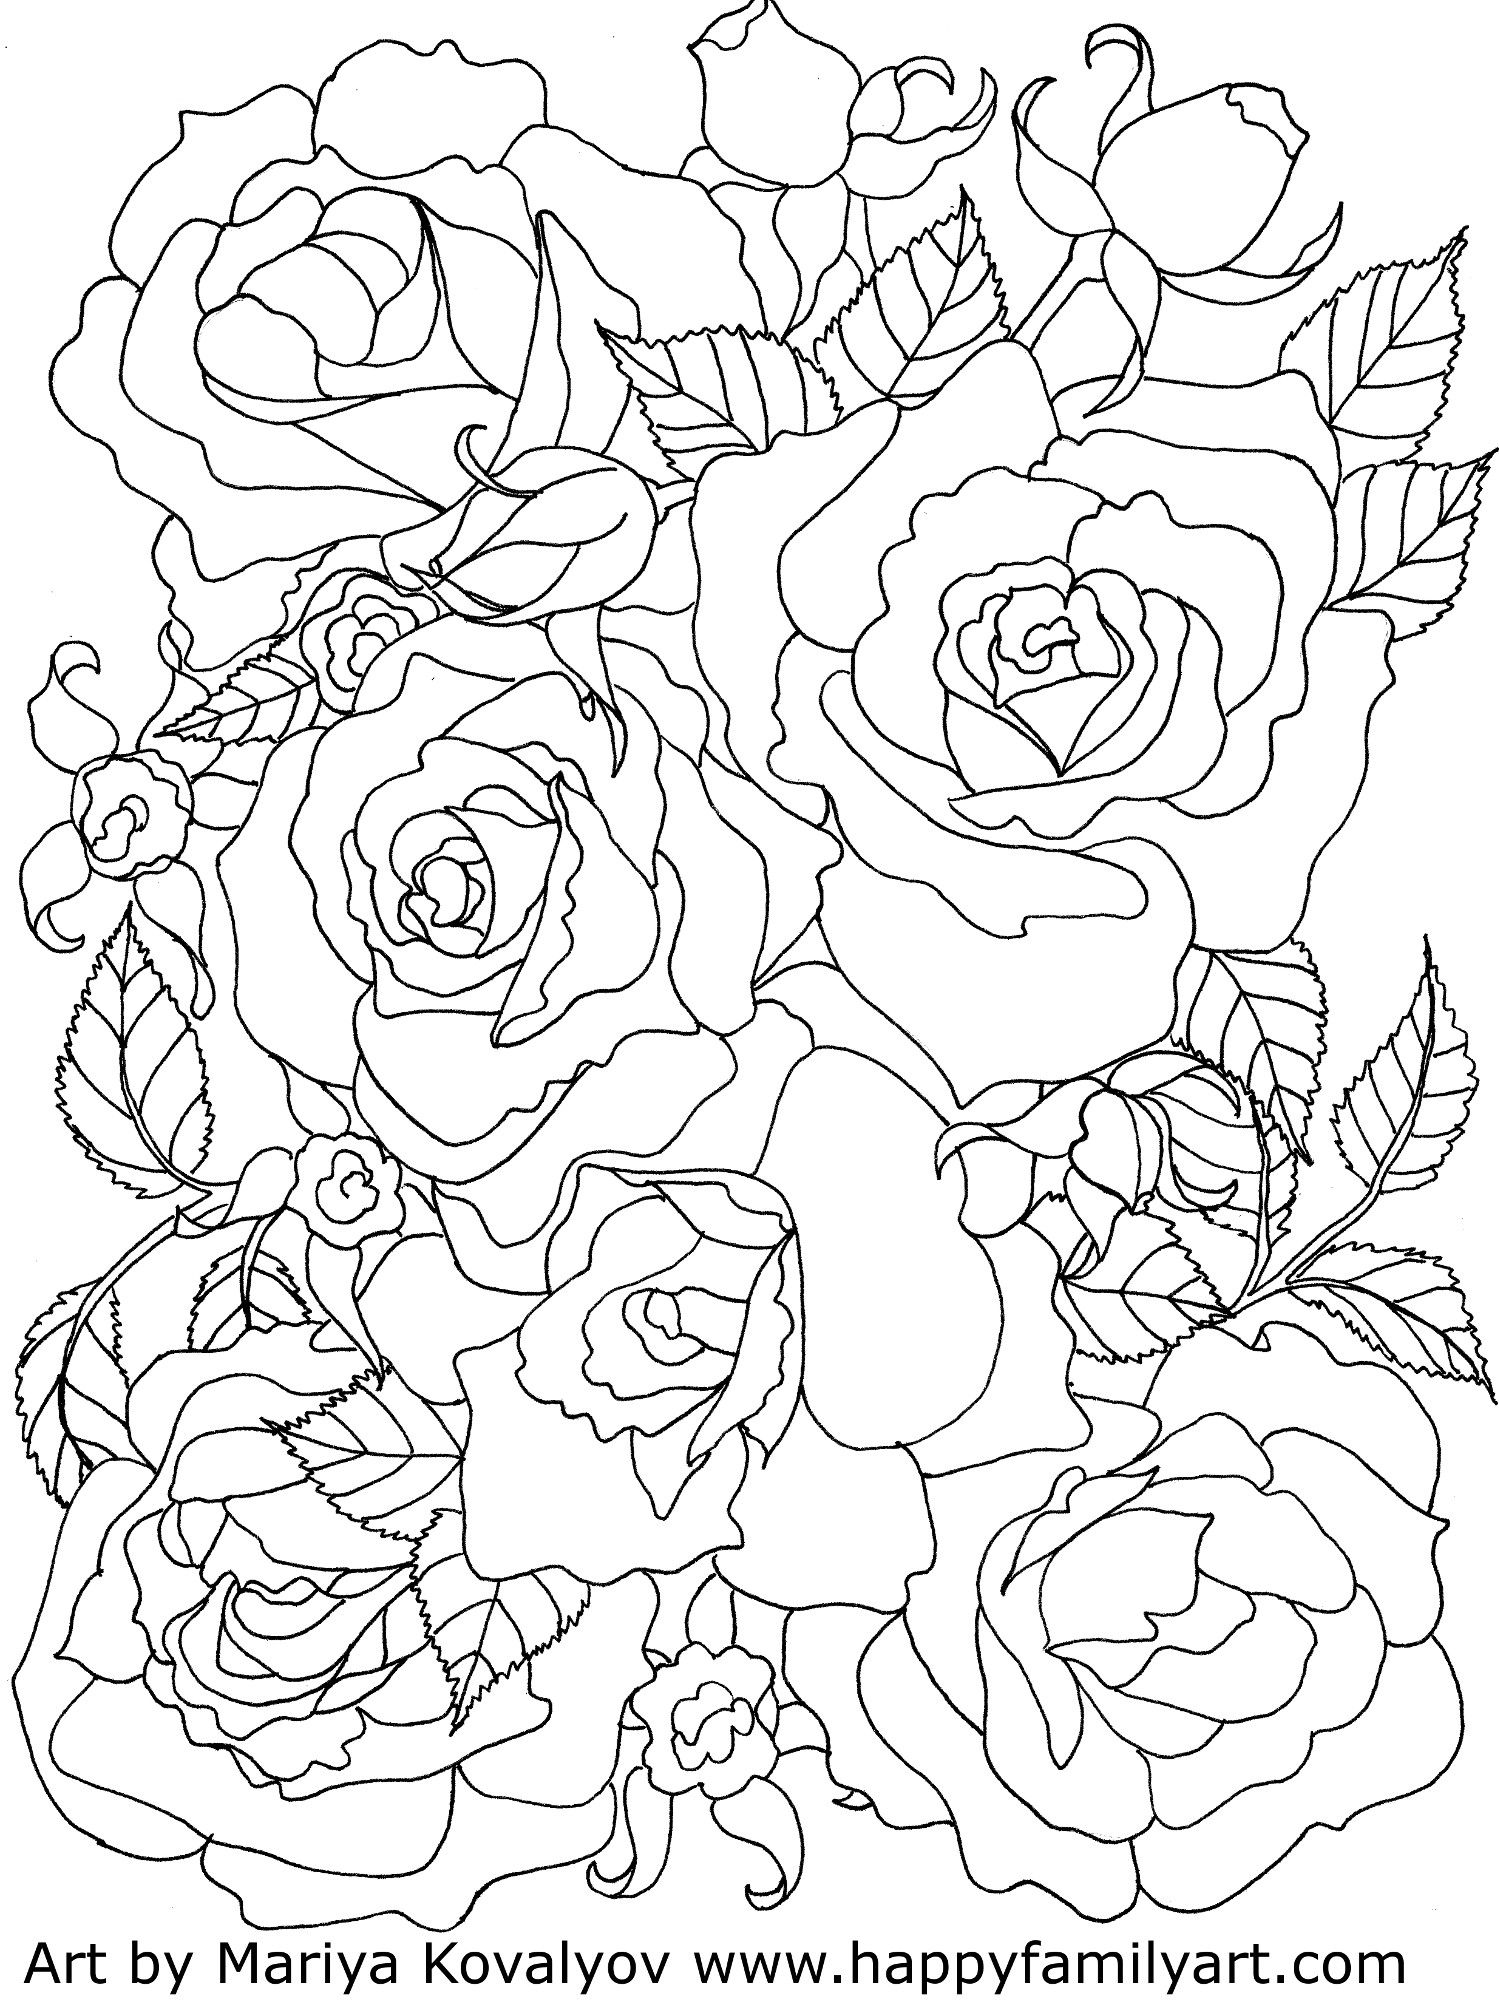 Happy Family Art Original And Fun Coloring Pages Rose Coloring Pages Flower Coloring Pages Mandala Coloring Pages